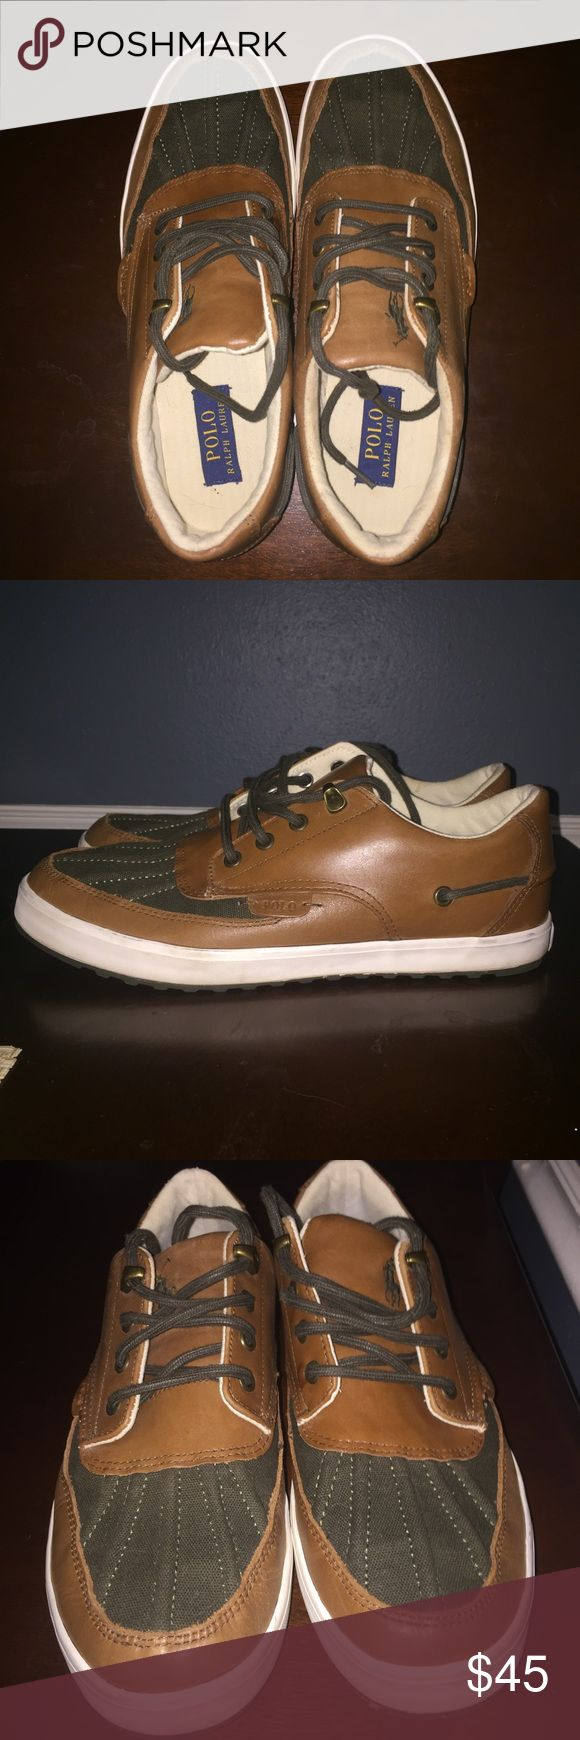 Polo Ralph Lauren shoes Polo Ralph Lauren men's shoes size 9.5, great condition. Polo by Ralph Lauren Shoes Boat Shoes